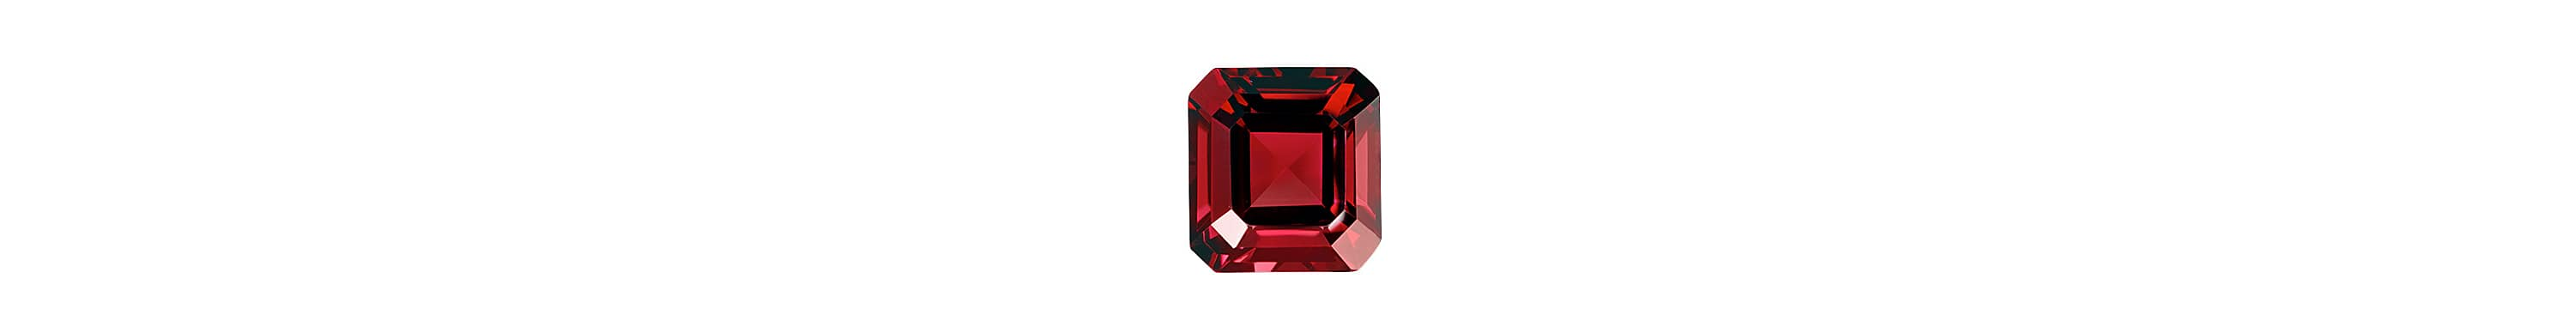 A color photograph shows a close-up shot of a cushion-cut garnet on a white background.